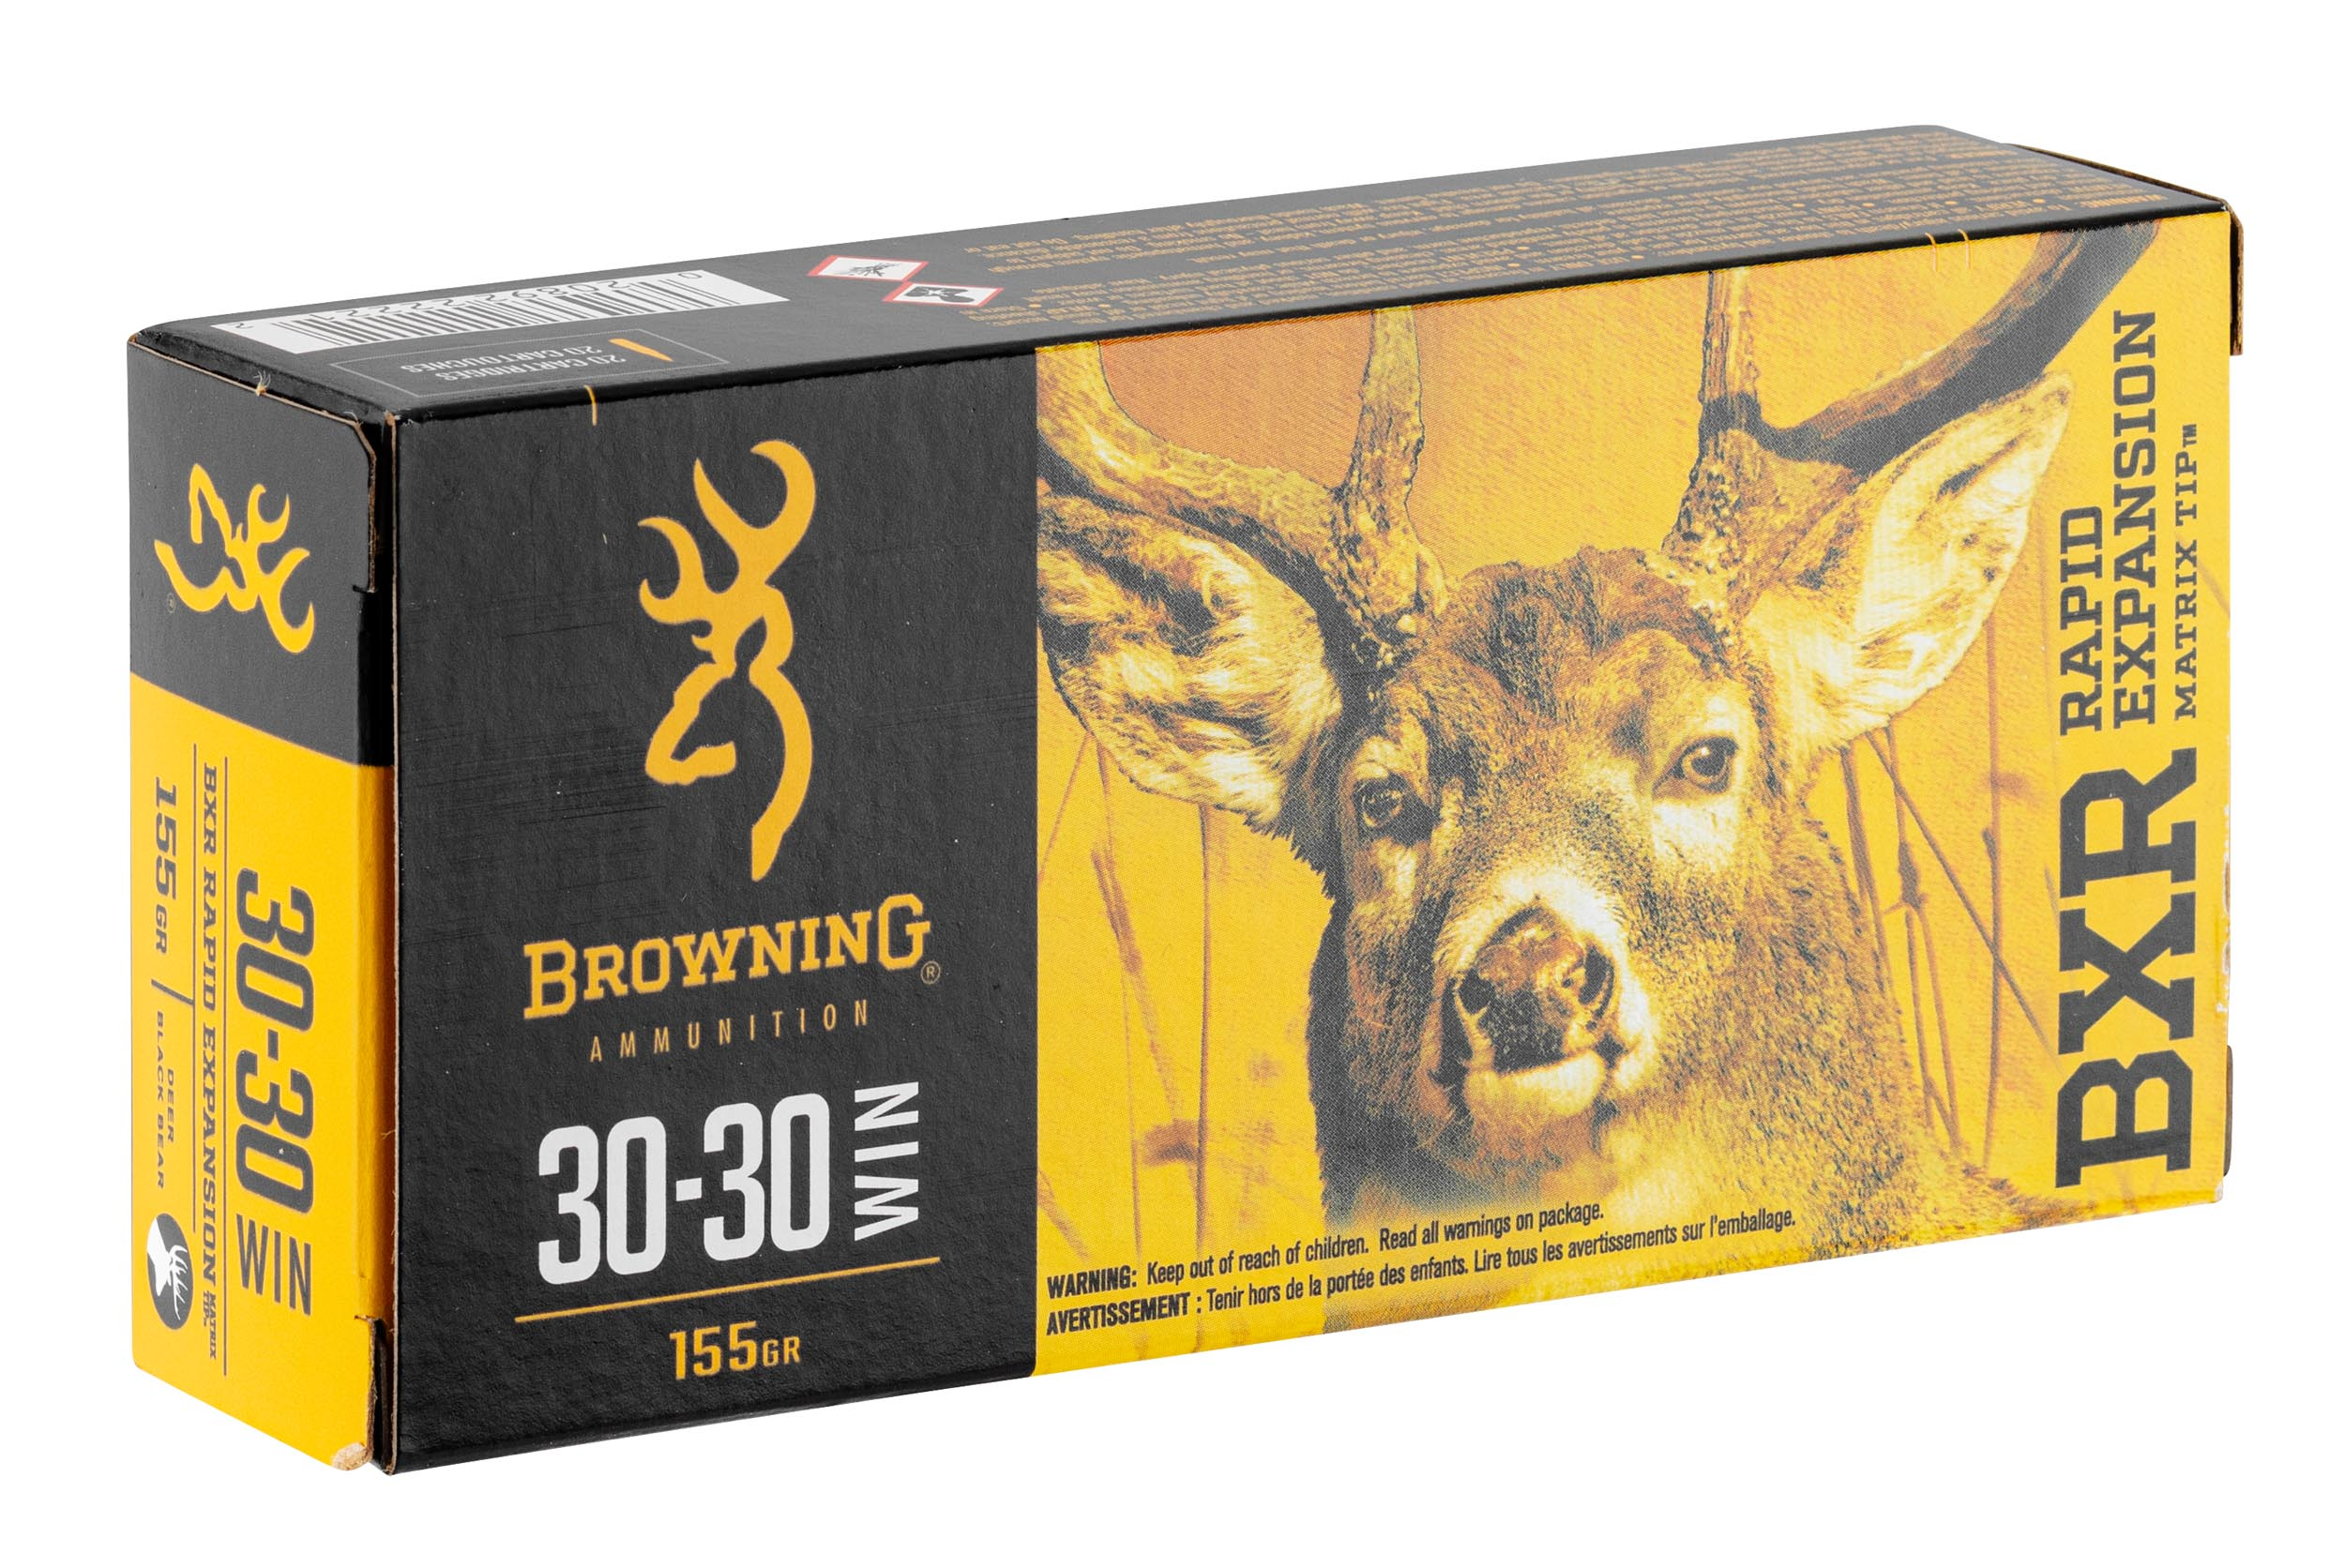 BW1333-1 Munition grande chasse Browning cal. 30-30 Win - BW1333